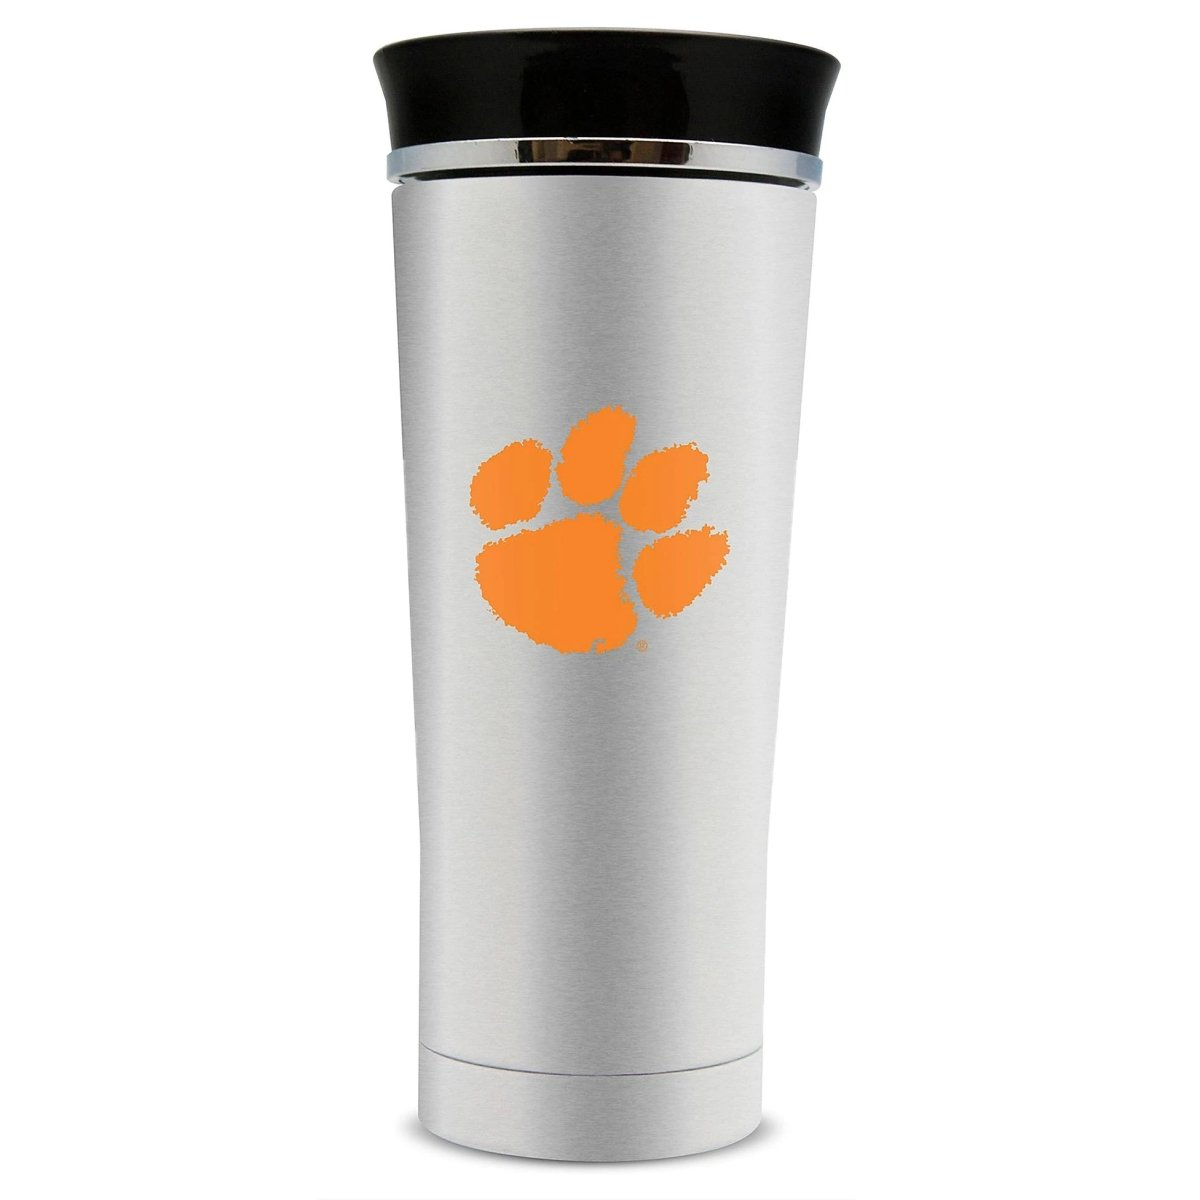 18 Oz. Stainless Steel Thermal Tumbler With Orange Paw - Mr. Knickerbocker